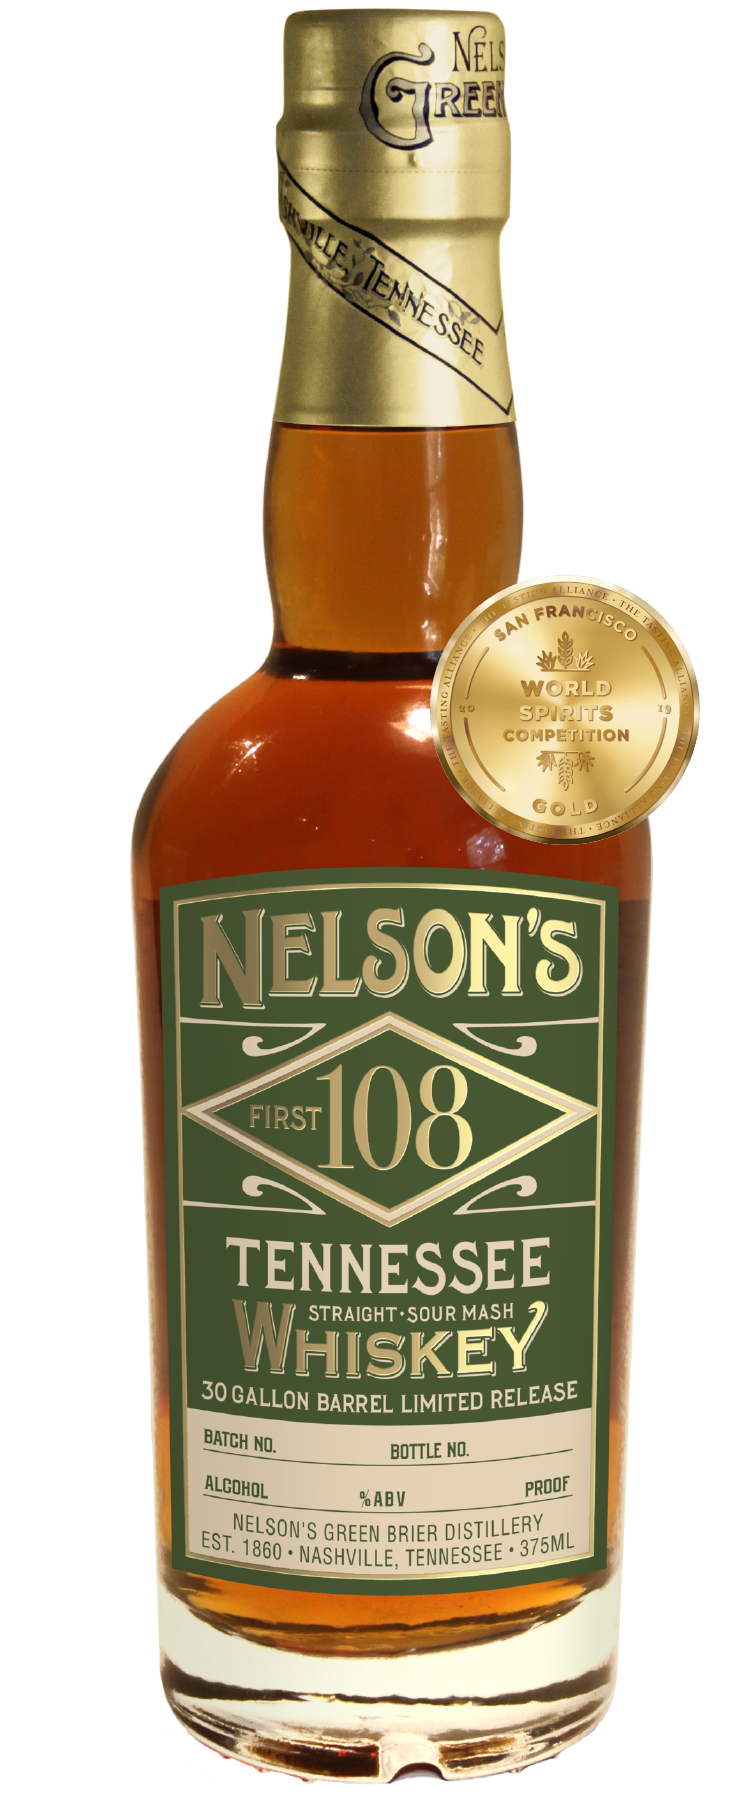 Nelson's Green Brier Distillery First 108 Tennessee Whiskey